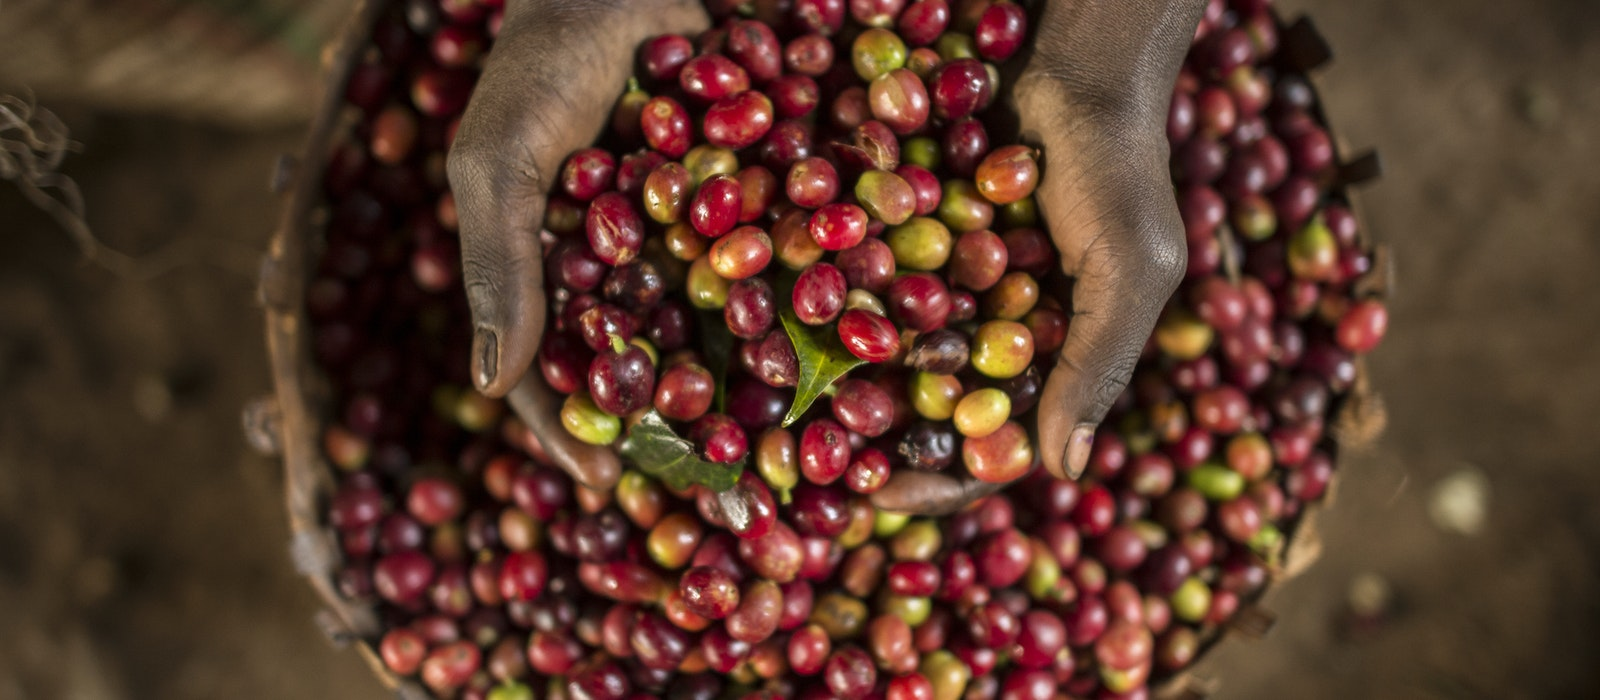 Ethiopia's Kaffa region is considered the birthplace of coffee.